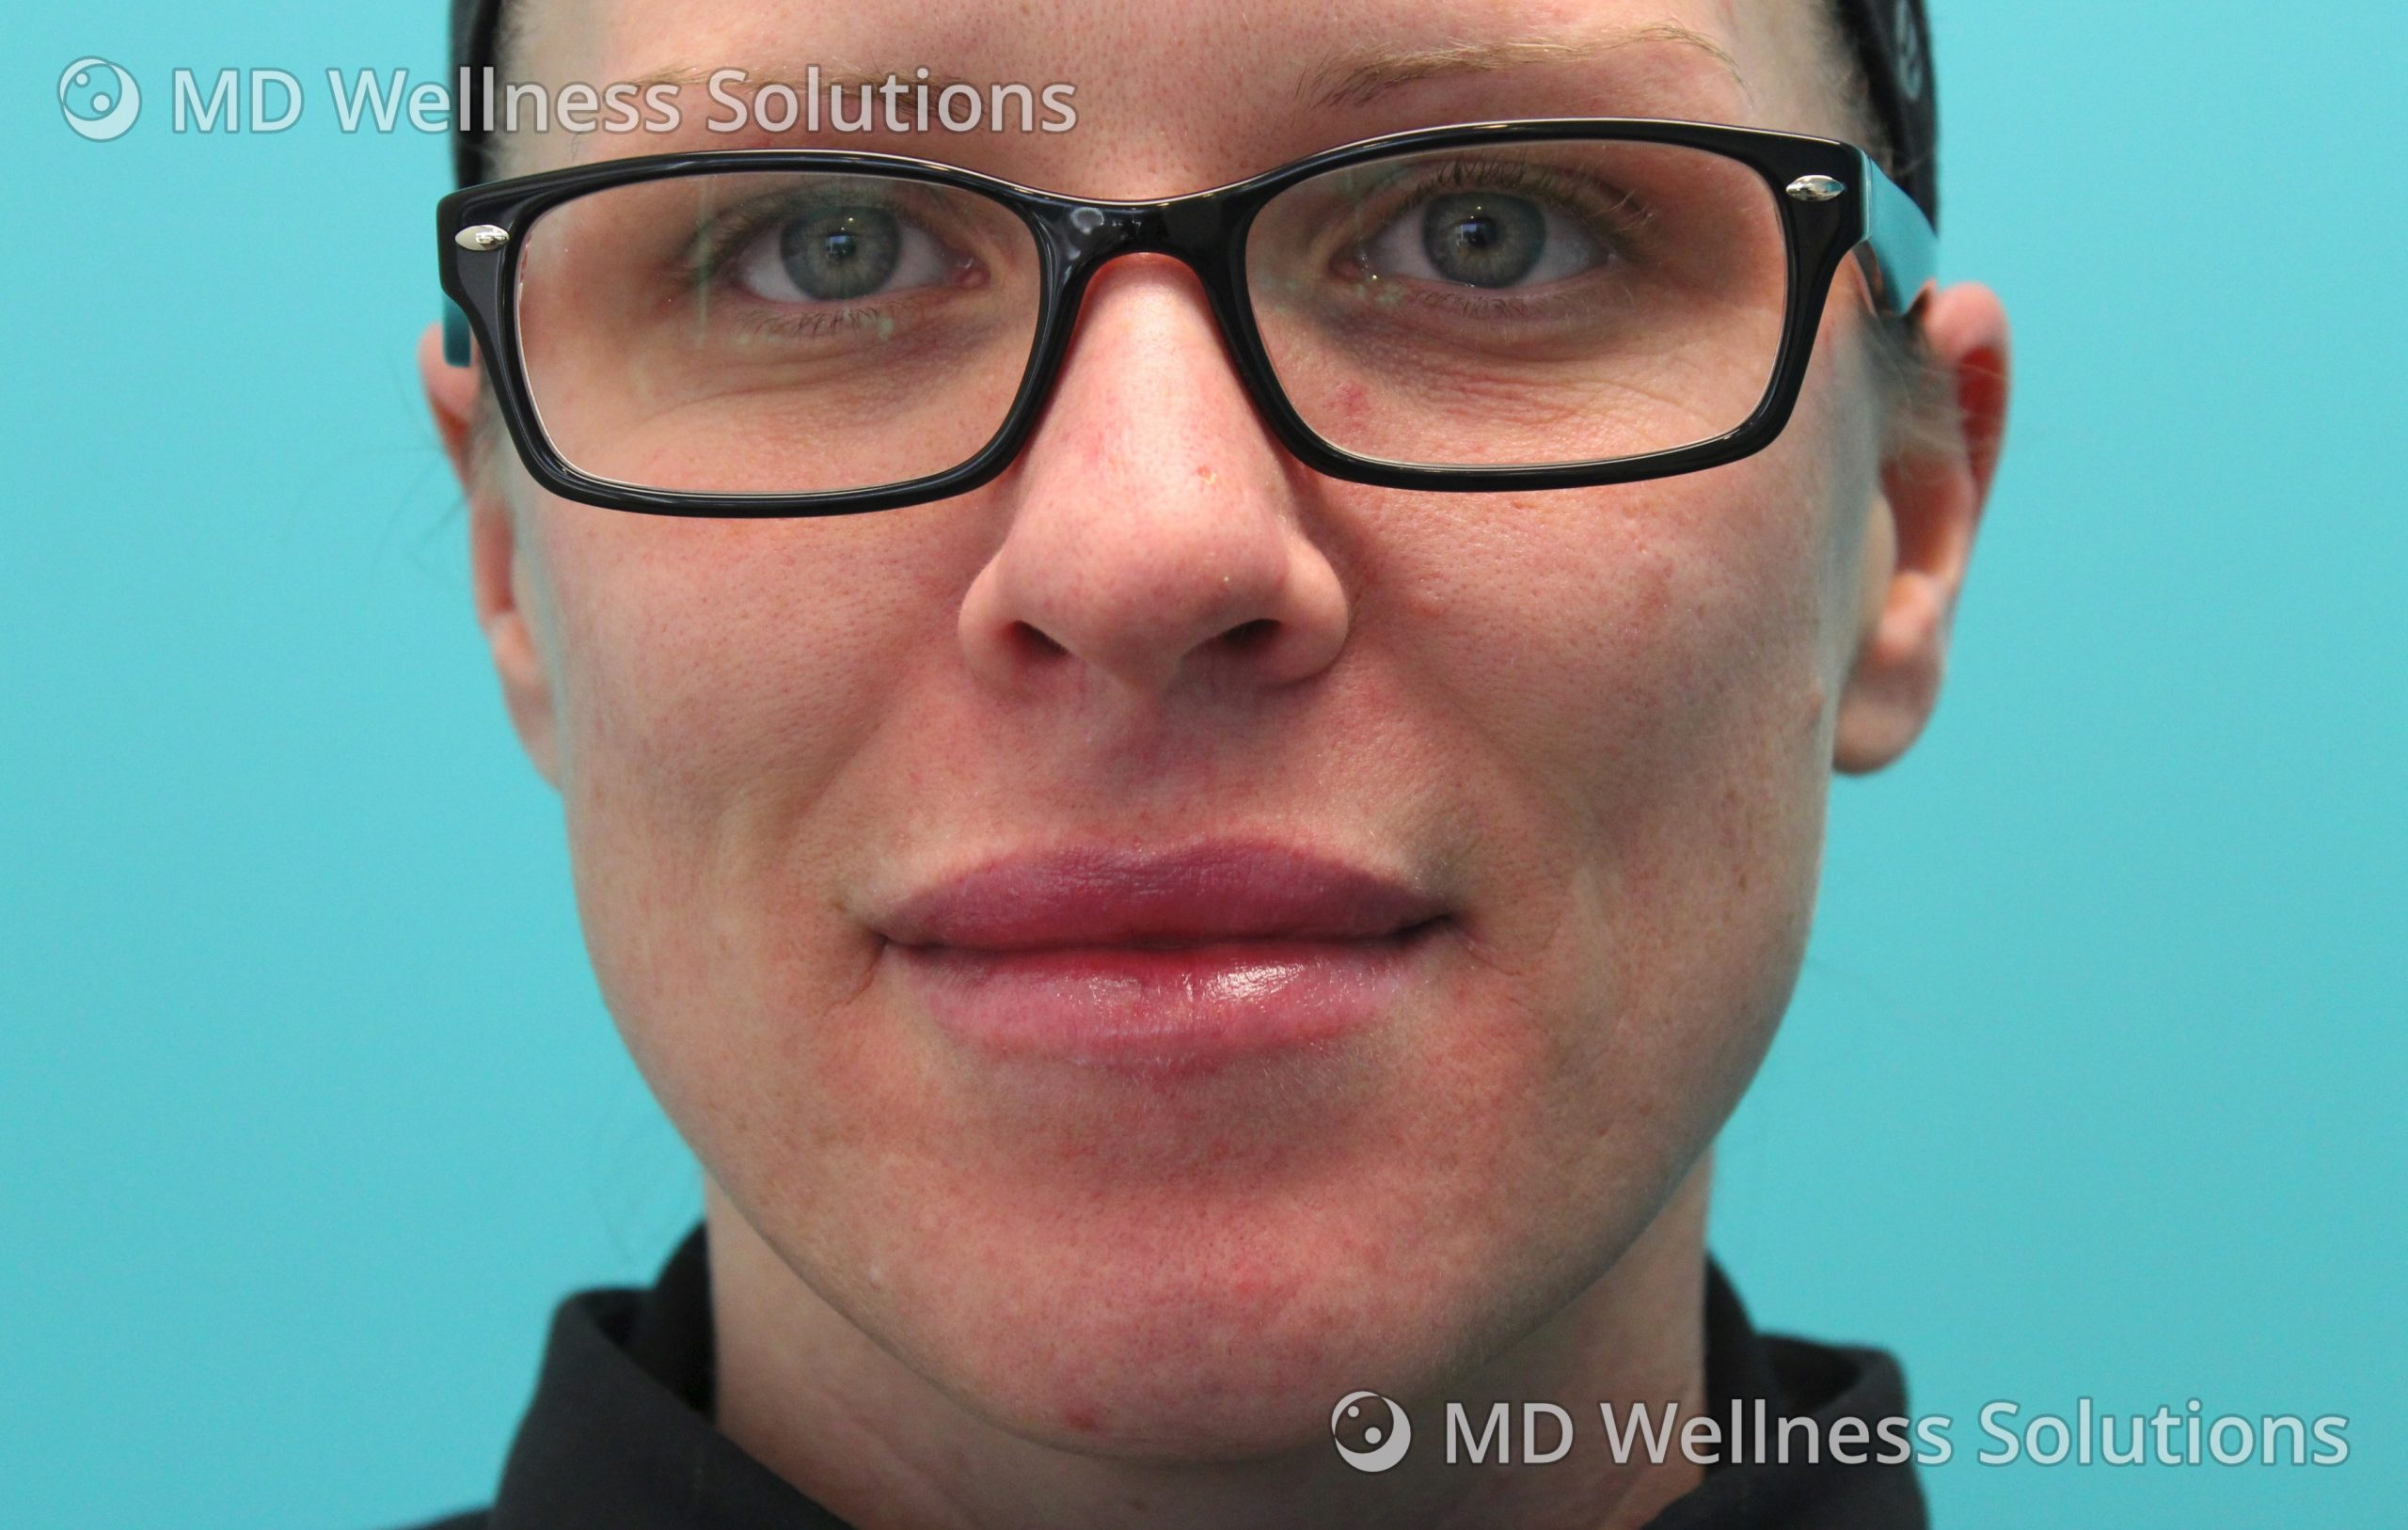 25-34 year old woman after lip filler treatment